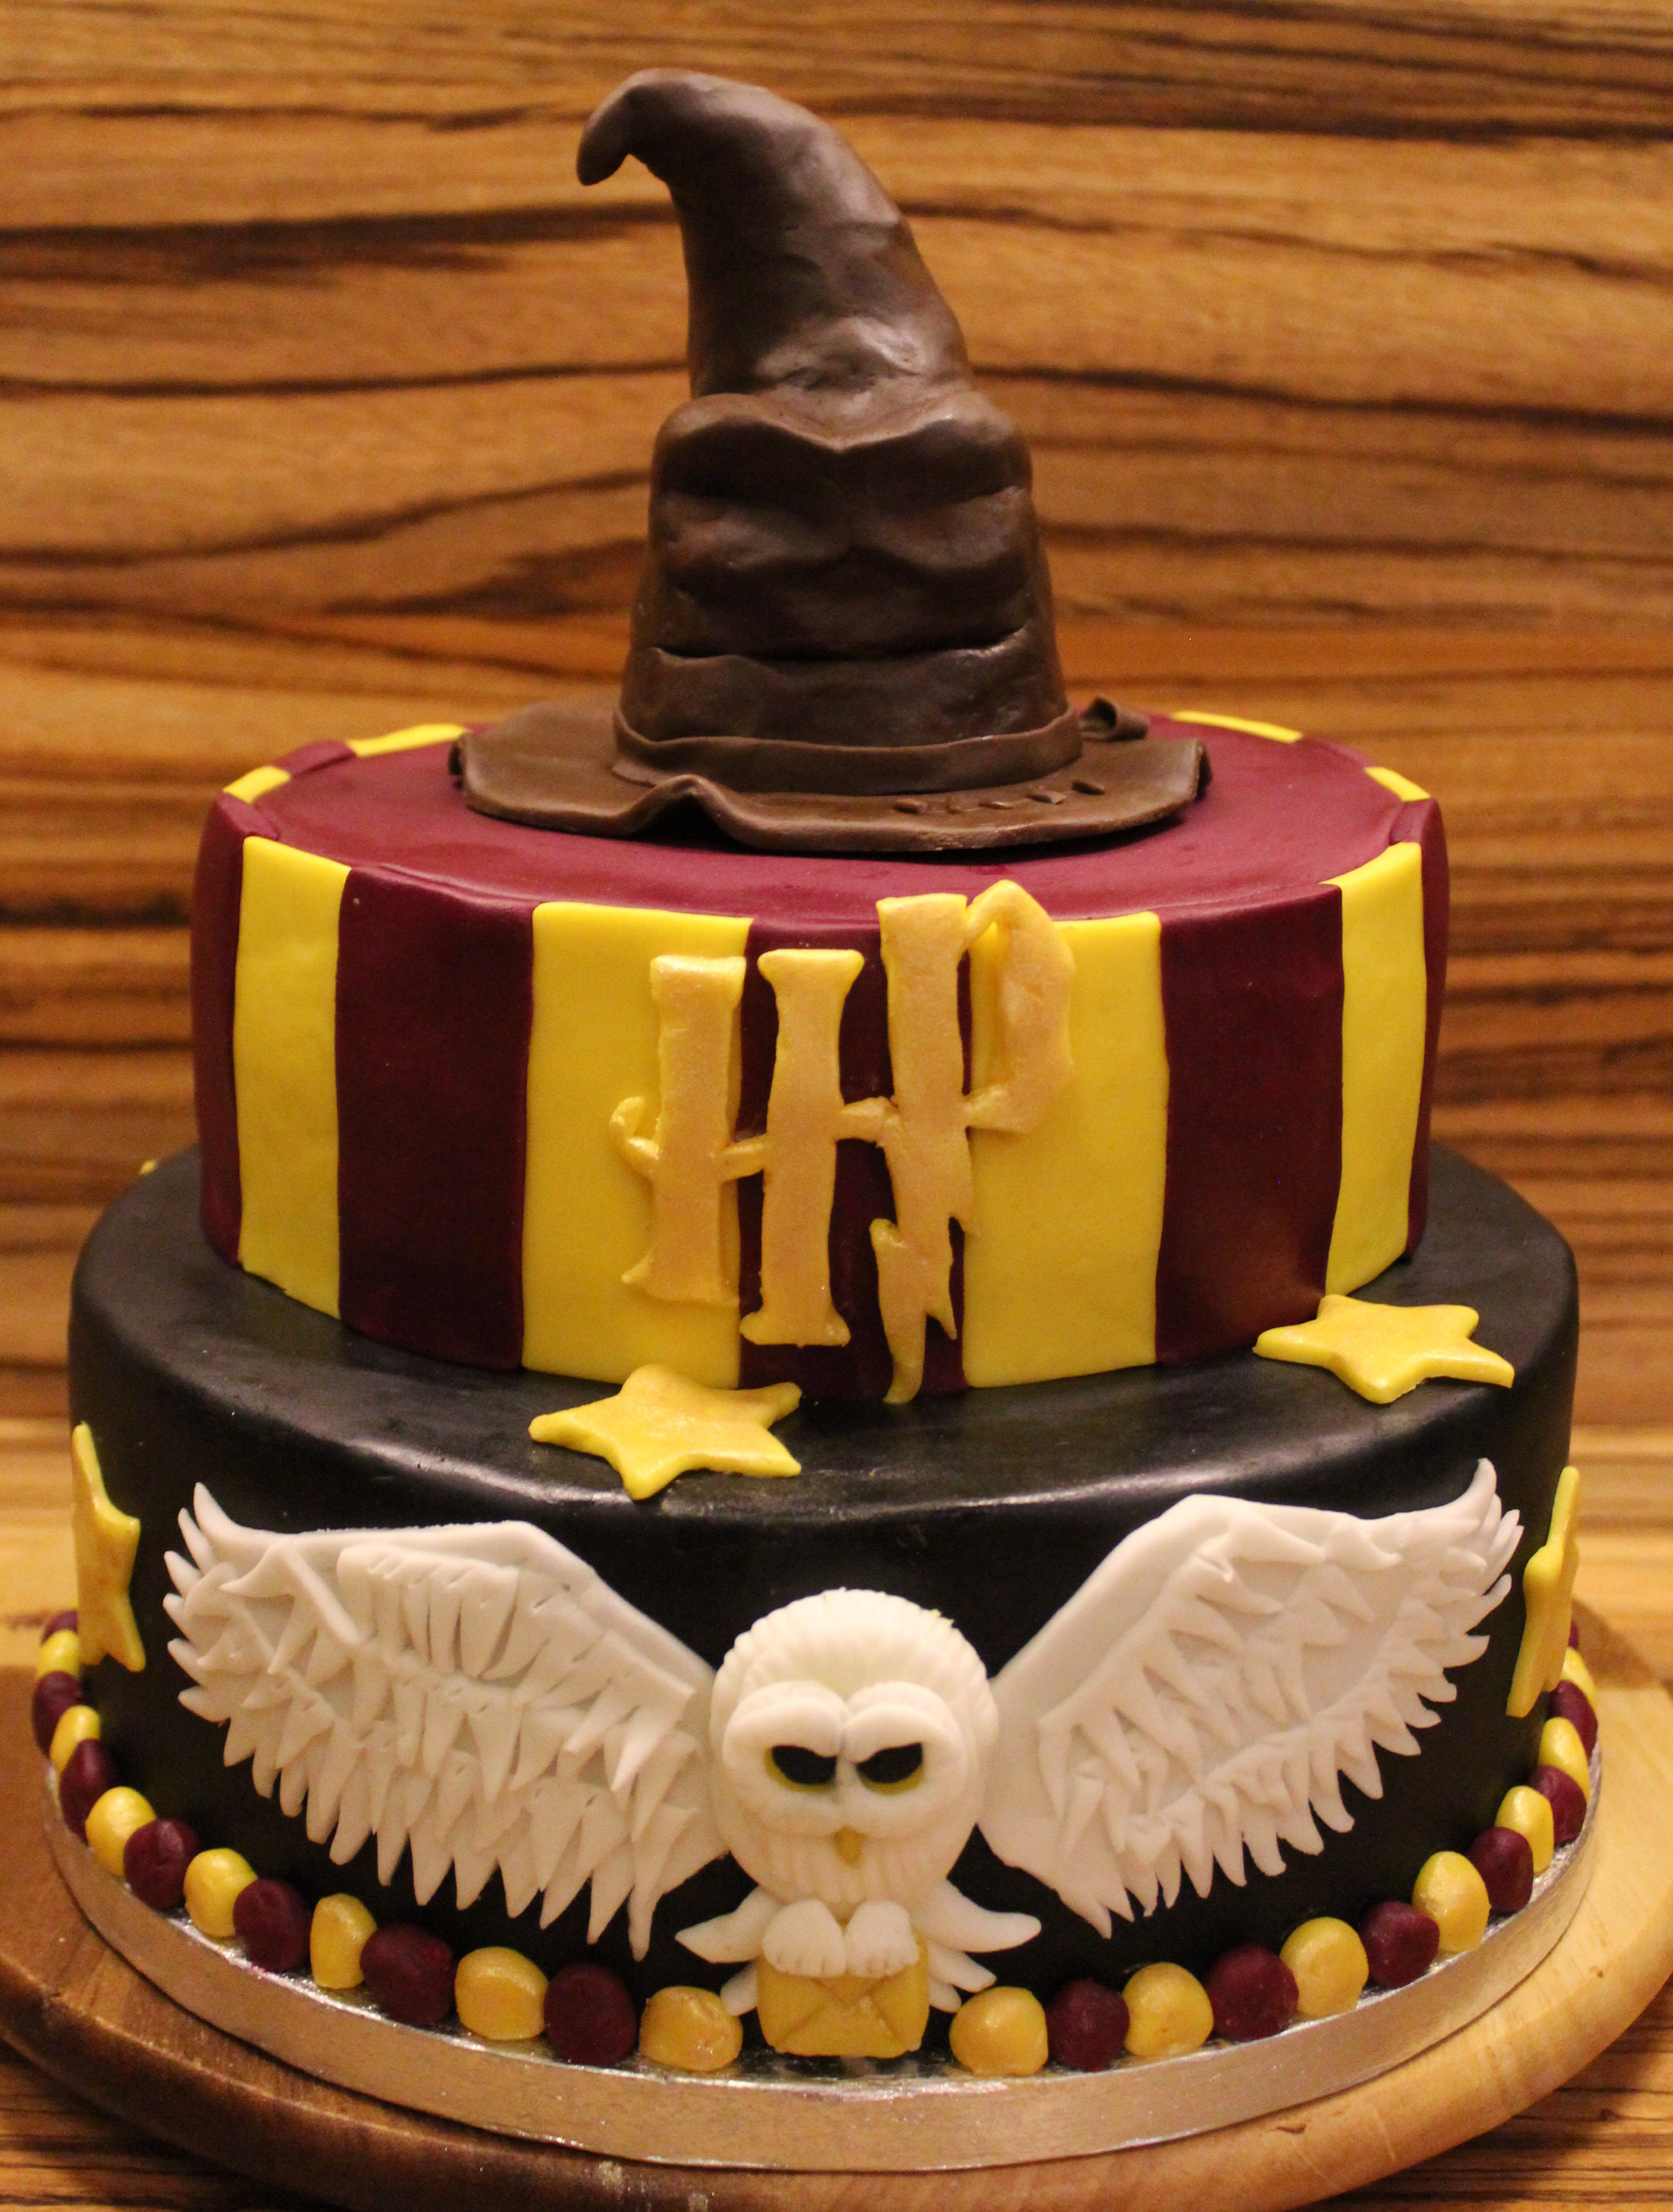 Harry Potter Birthday Cake 19 Harry Potter Themed Pastries Too Magical To Be Real Bookstr